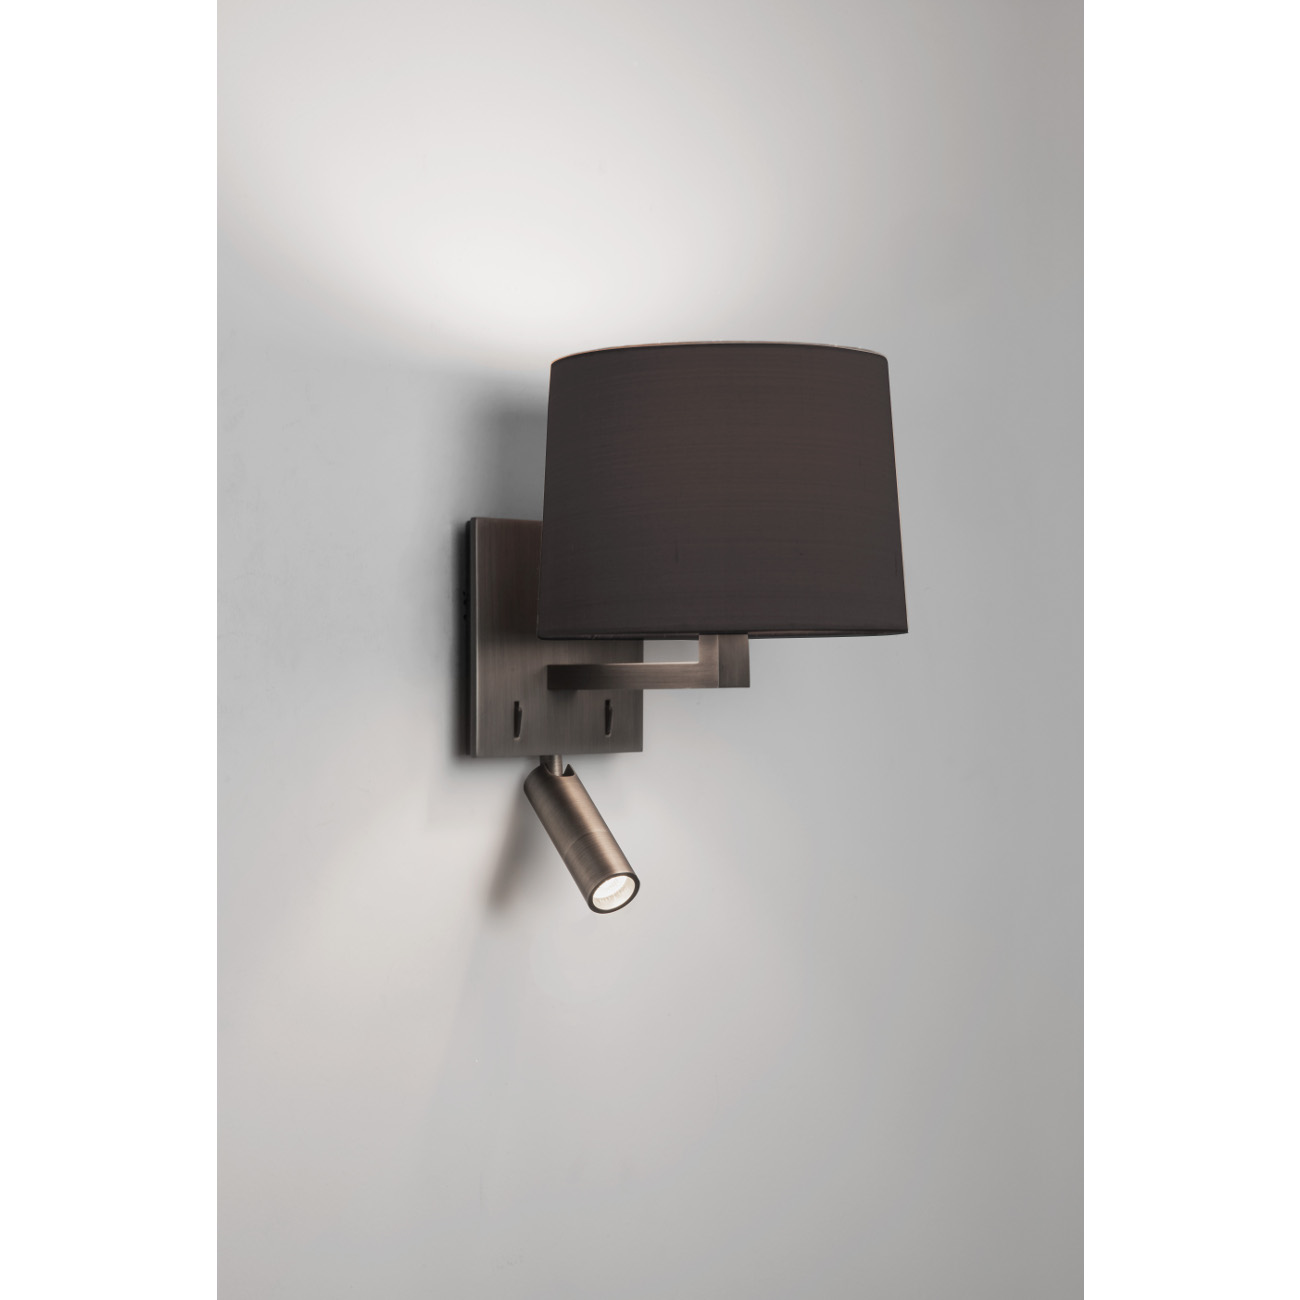 wandlampe mit rundem schirm und schwenkbarem led licht azumi reader. Black Bedroom Furniture Sets. Home Design Ideas